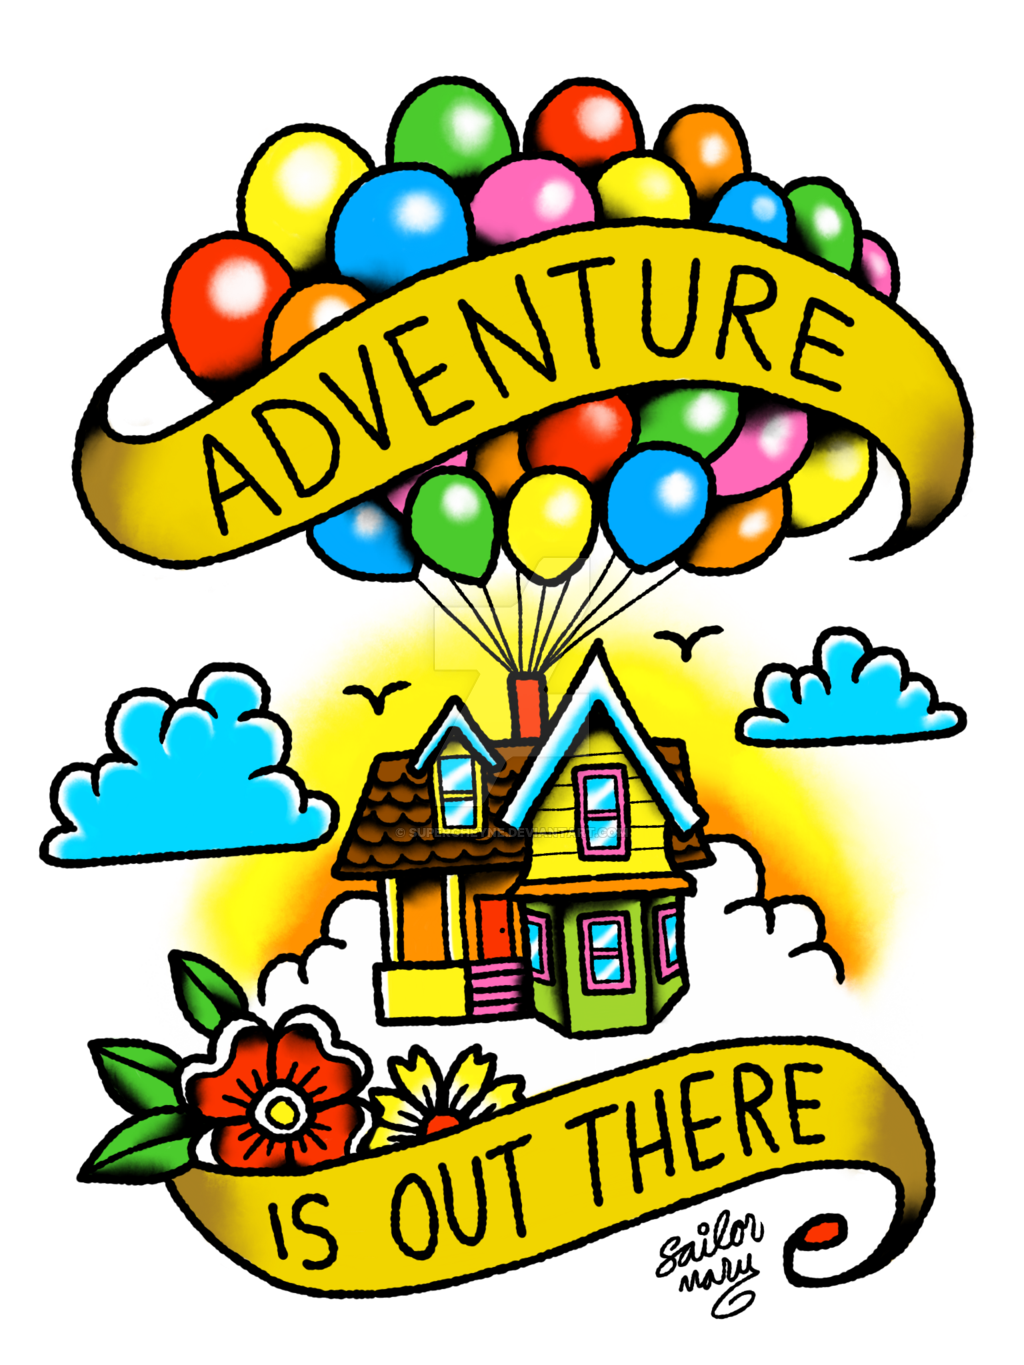 Up house with balloons clipart banner free download Pixar Tattoo - Up by supercheyne on DeviantArt banner free download